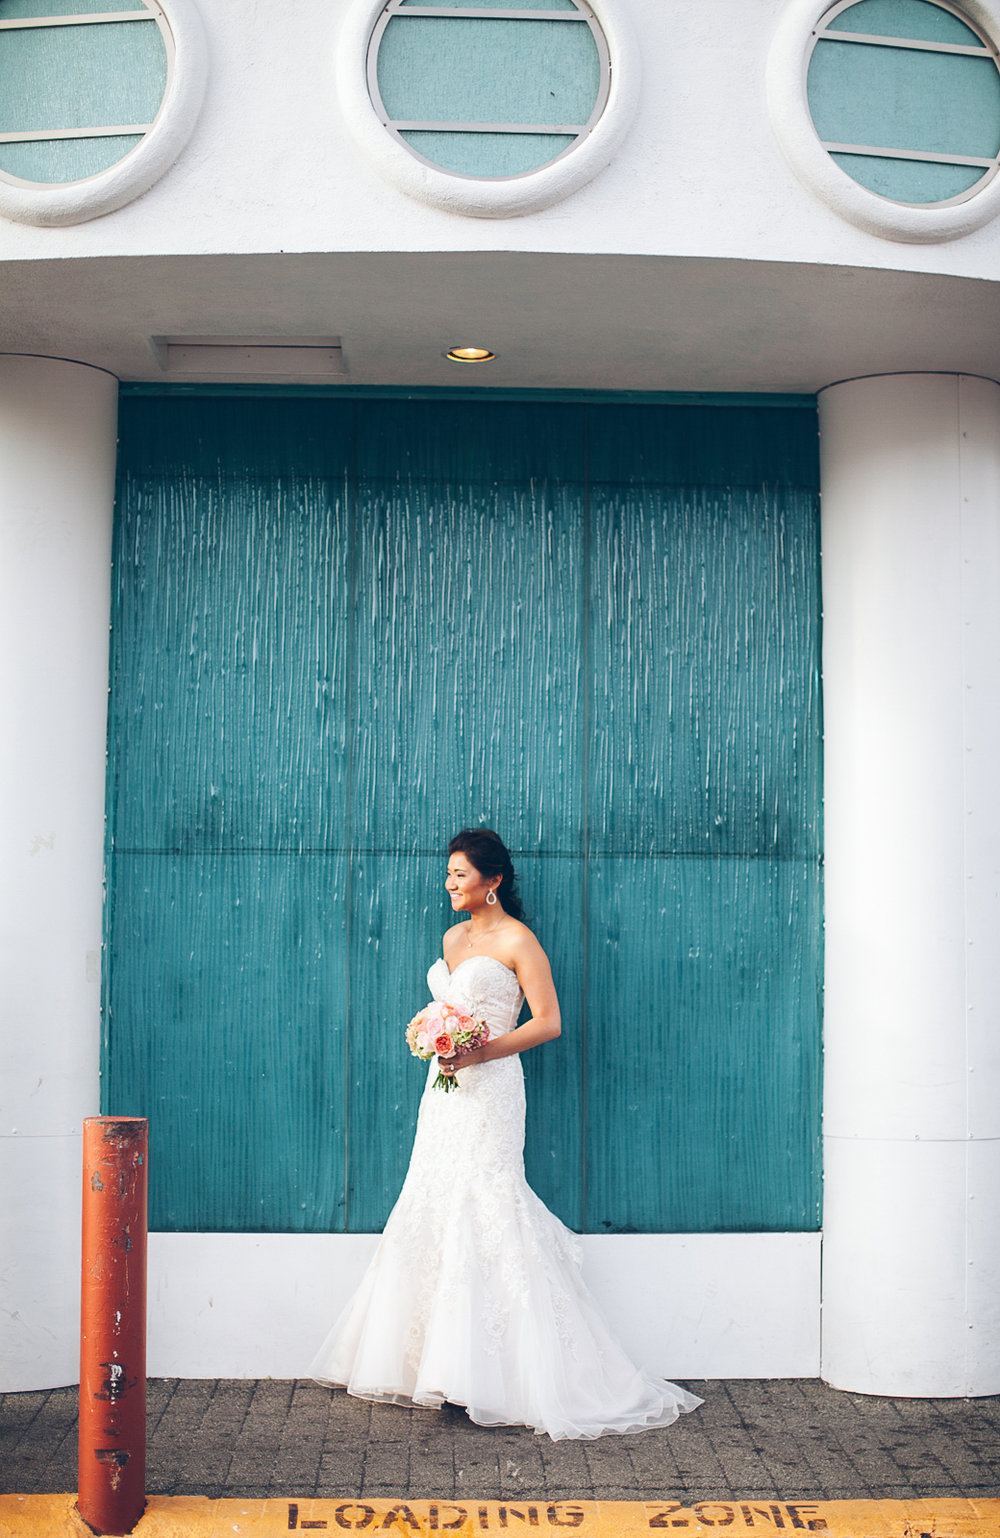 San_francisco_city_hall_wedding_photography_meegan_travis_ebony_siovhan_bokeh_photography_81.jpg